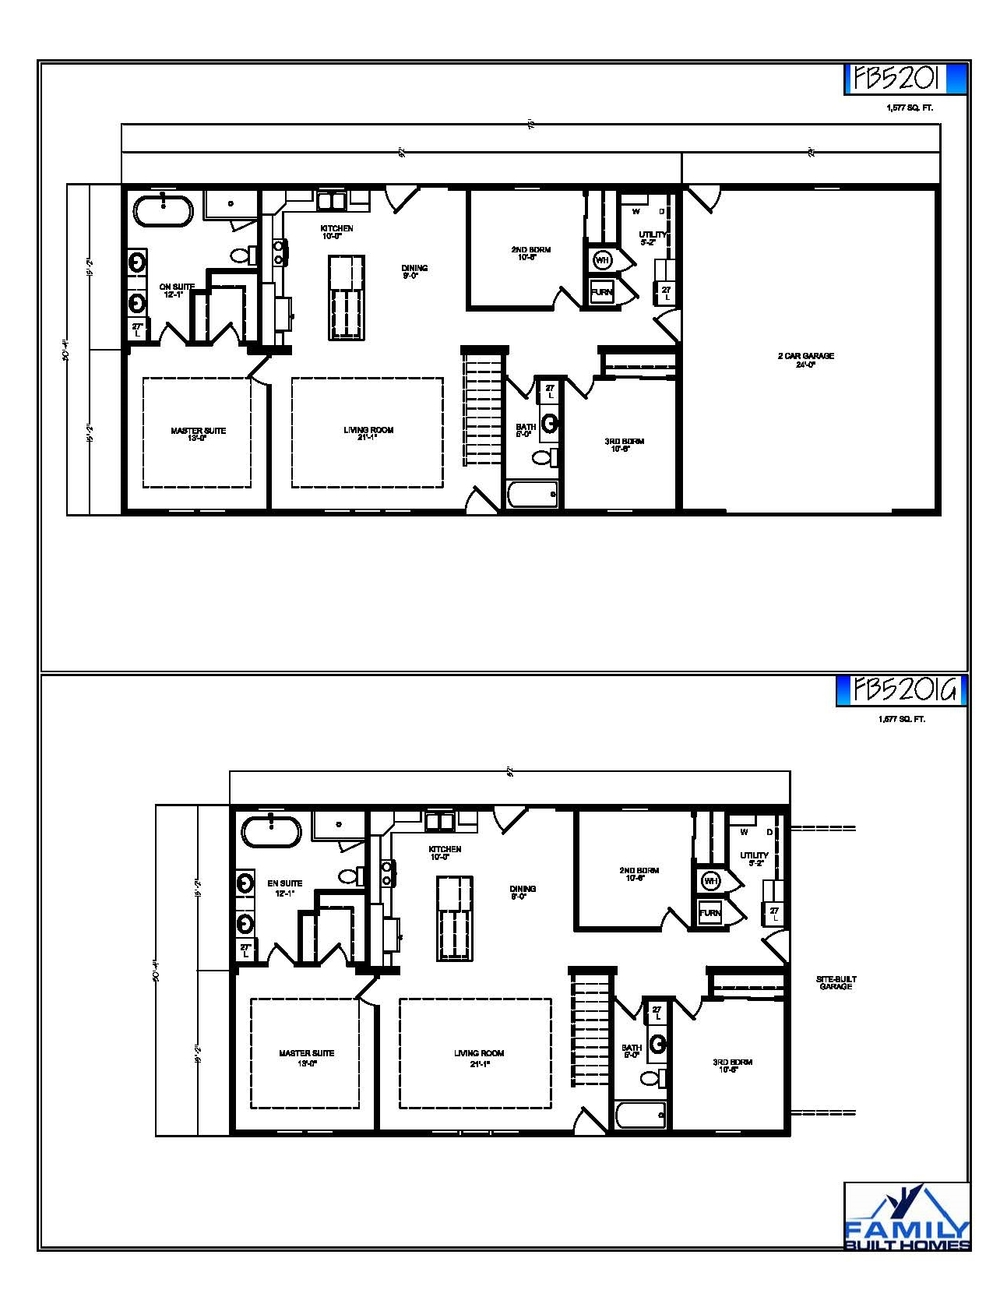 Floor plan collection sheets Model (1).pdf52s.jpg